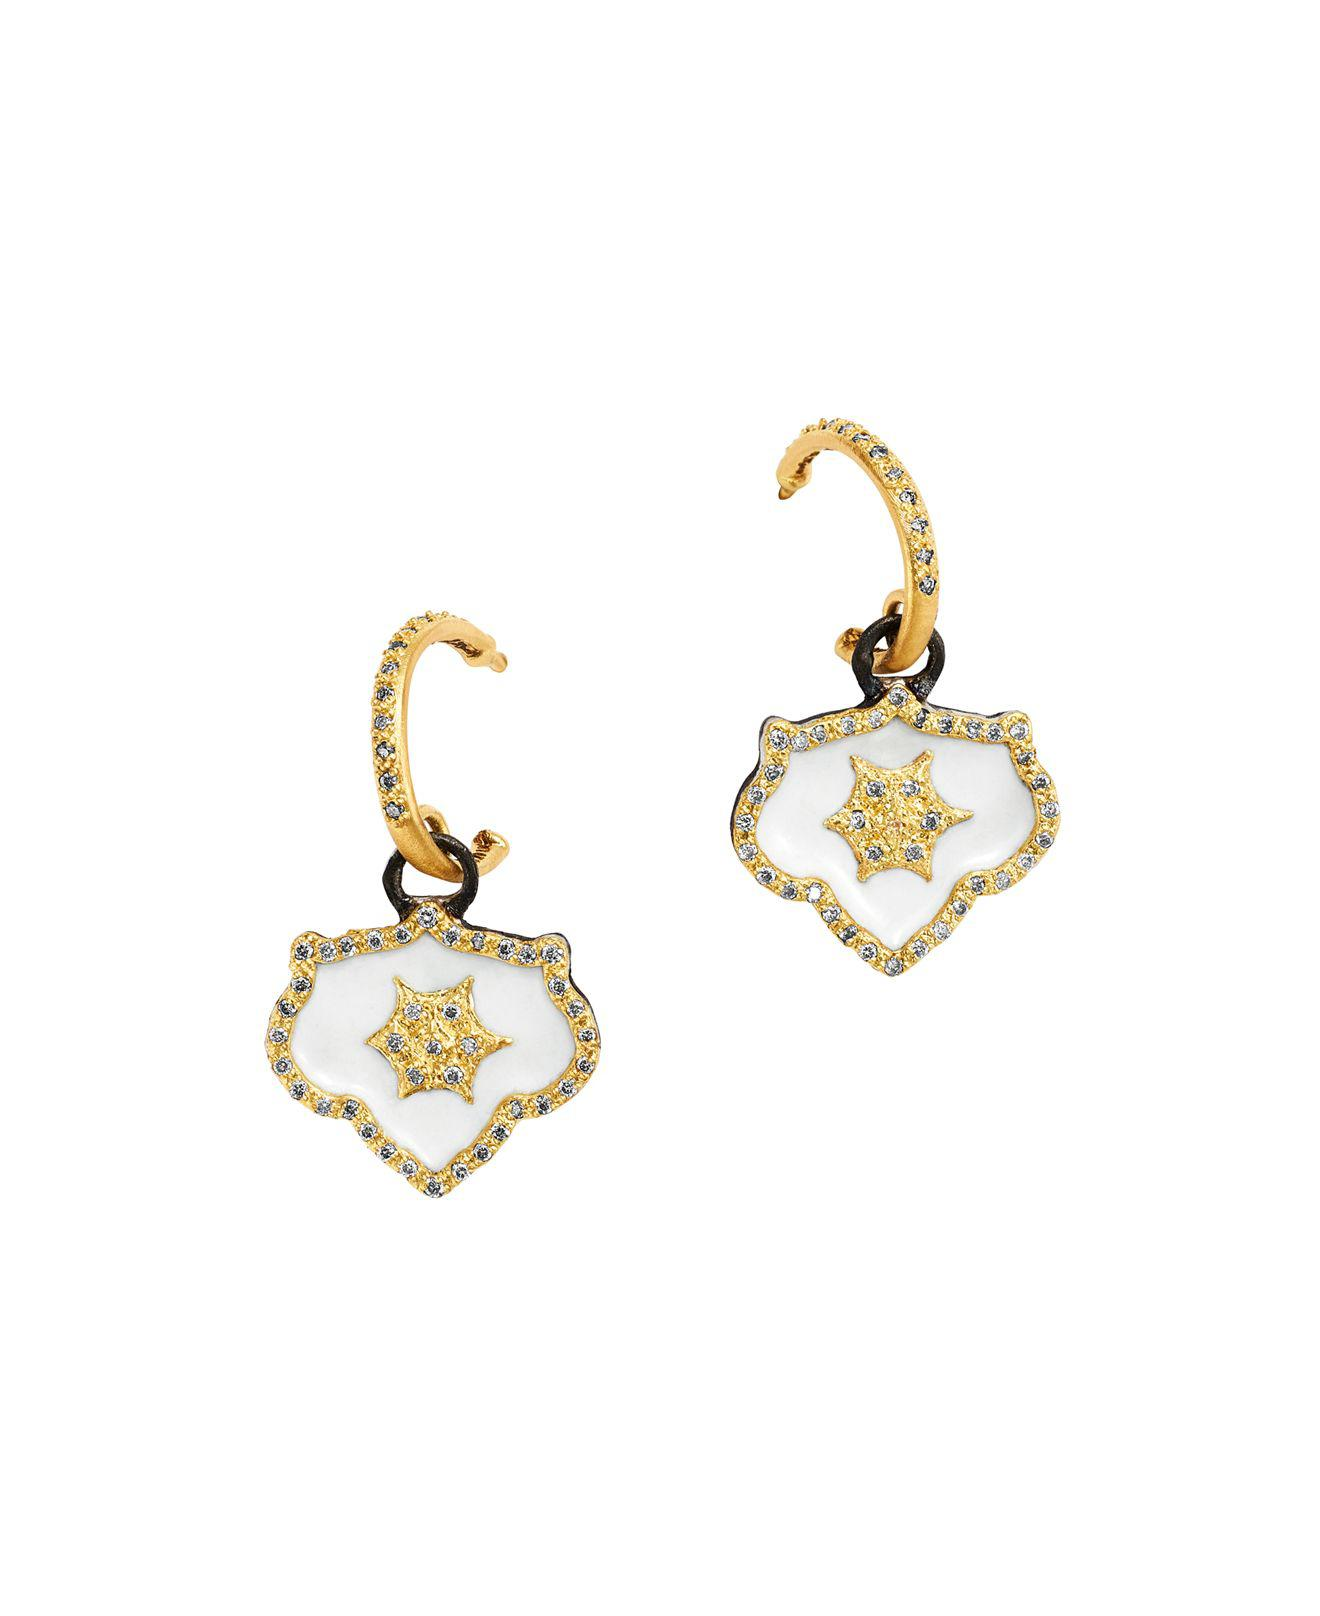 Armenta Old World Midnight Small Shield Earrings with Champagne Diamonds fXDUQya